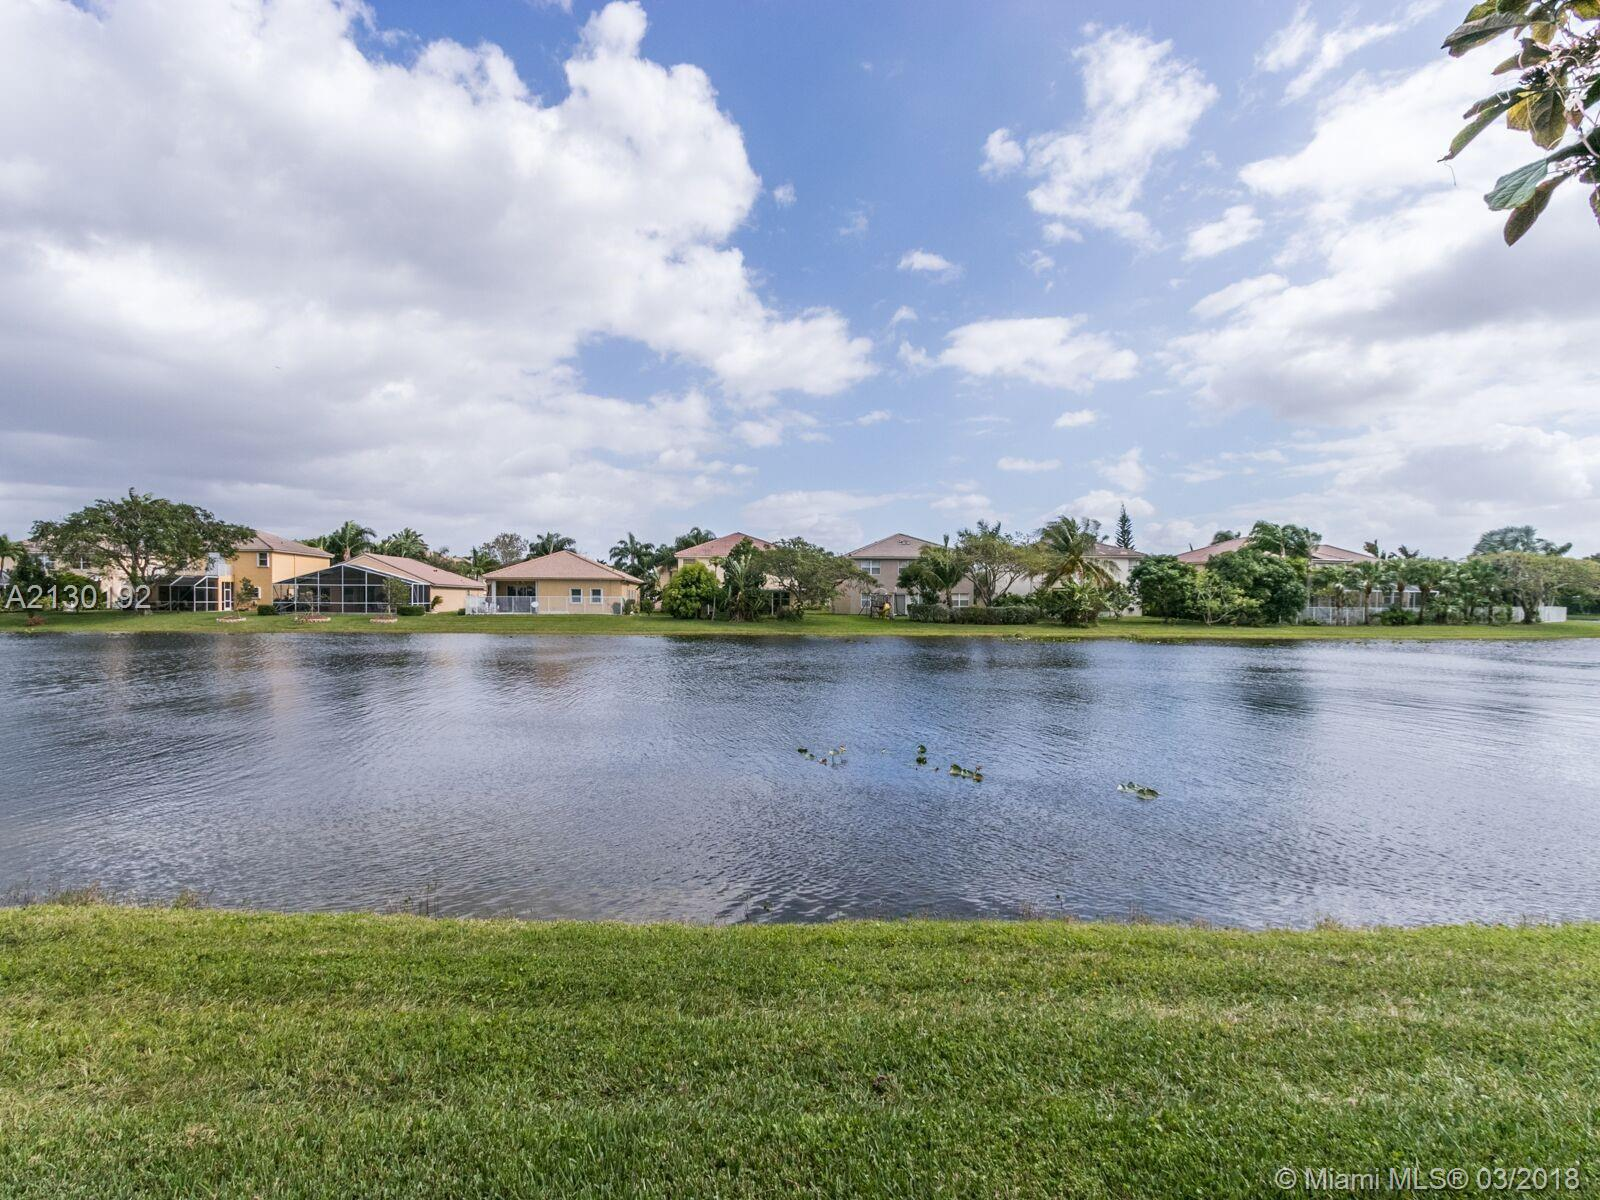 3704 San simeon cr-3704 weston--fl-33331-a2130192-Pic21